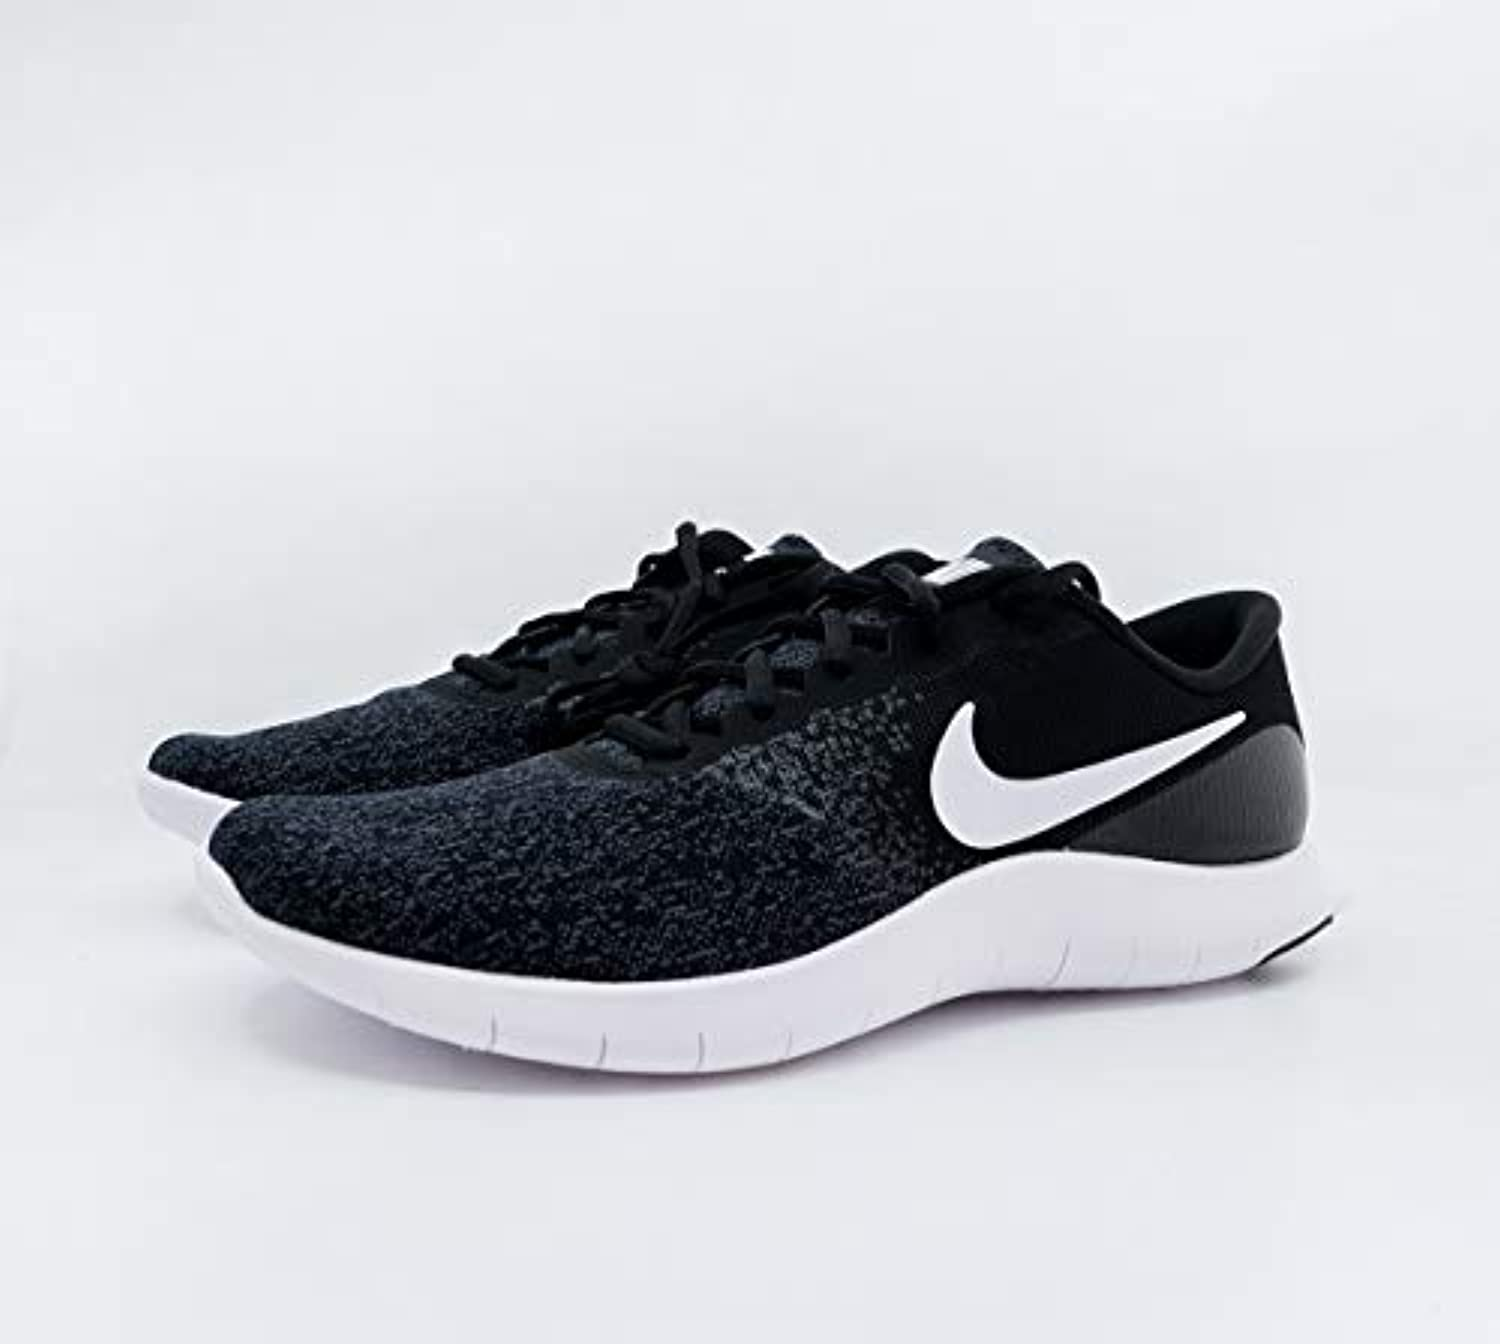 597d1819dbfbb Nike Wmns Flex Contact  ndash  Running Shoes